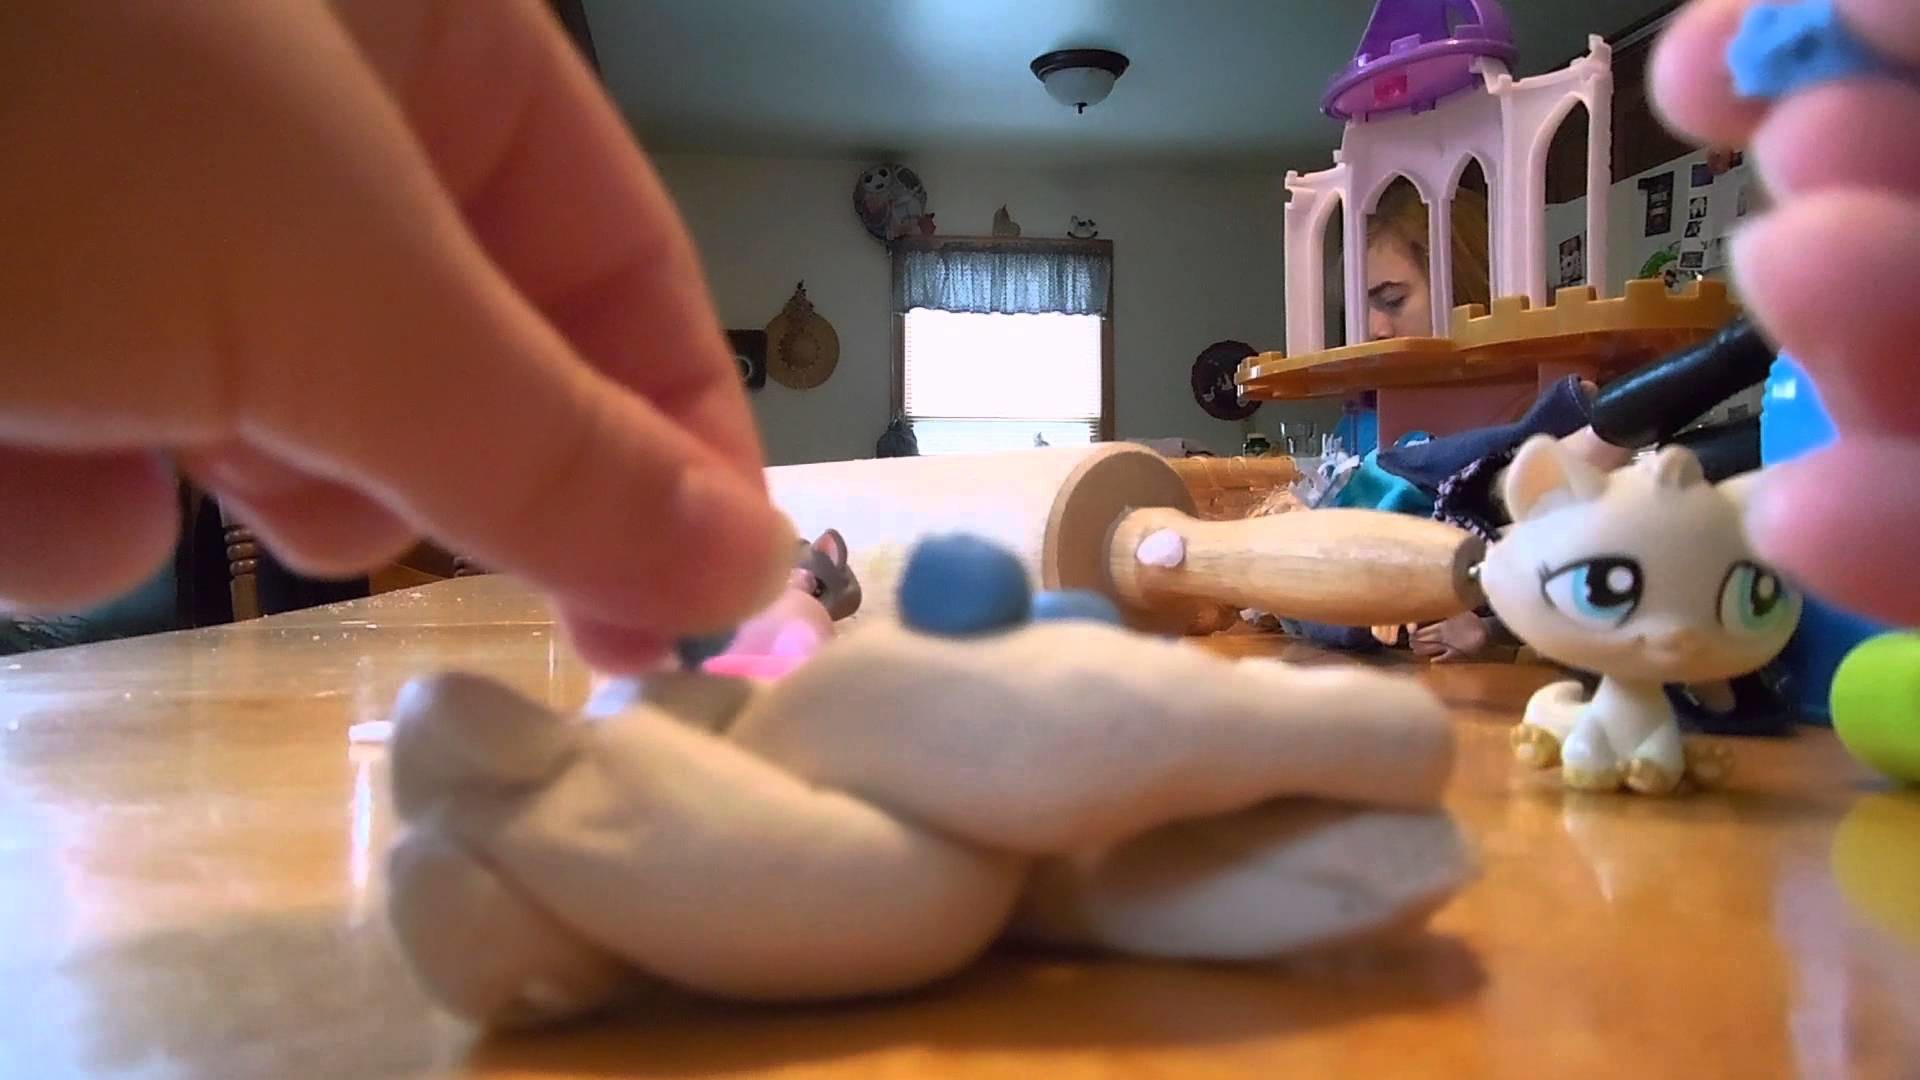 Frozen Inspired Play-Doh LPS DIY